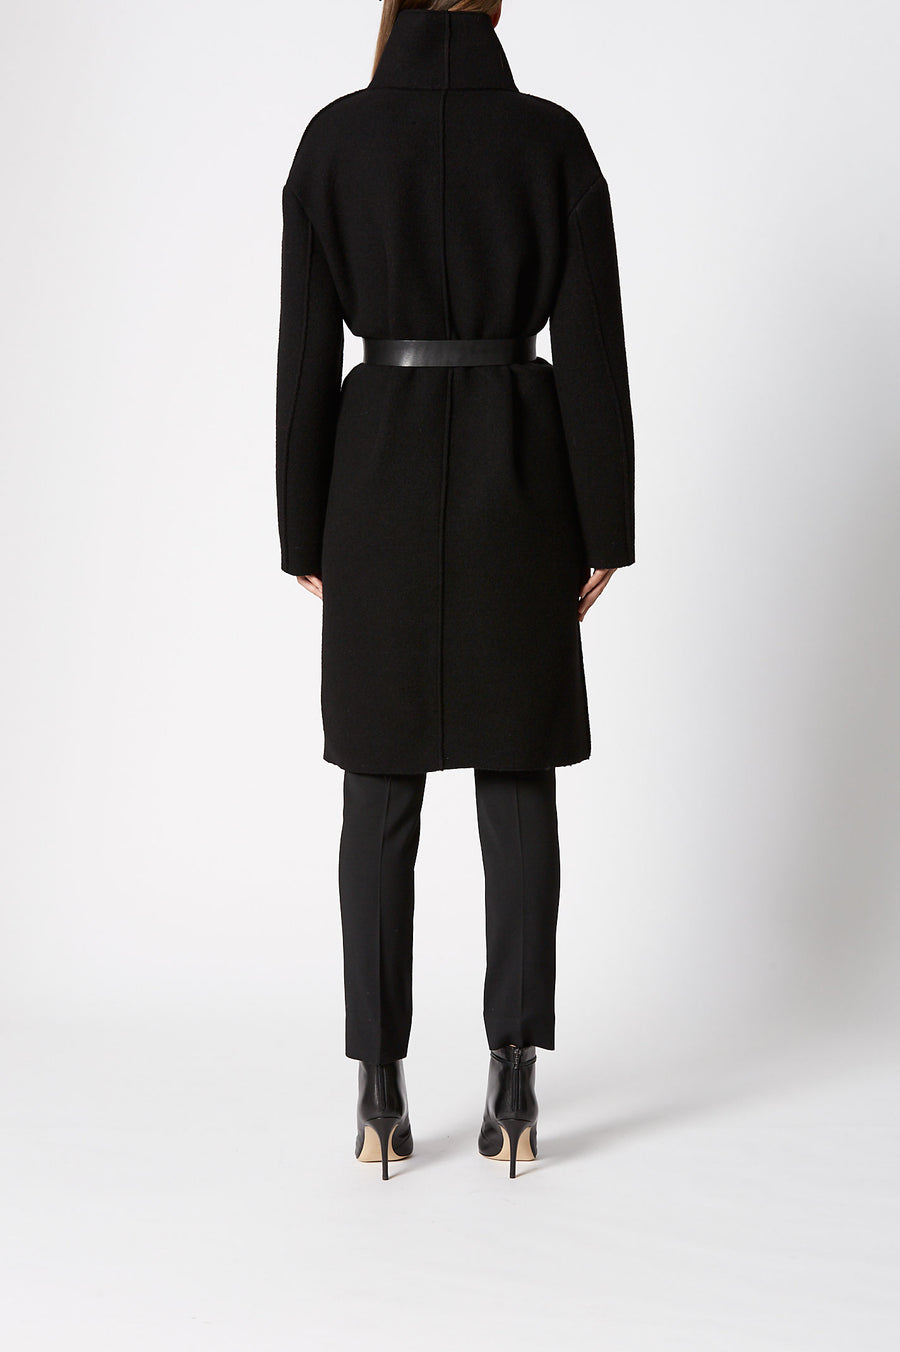 Cut Edge Wool Coat, slim fit, mid length coat, seam pockets, high neck collar, one button fastening at the top where collar wraps around to close, Color Black